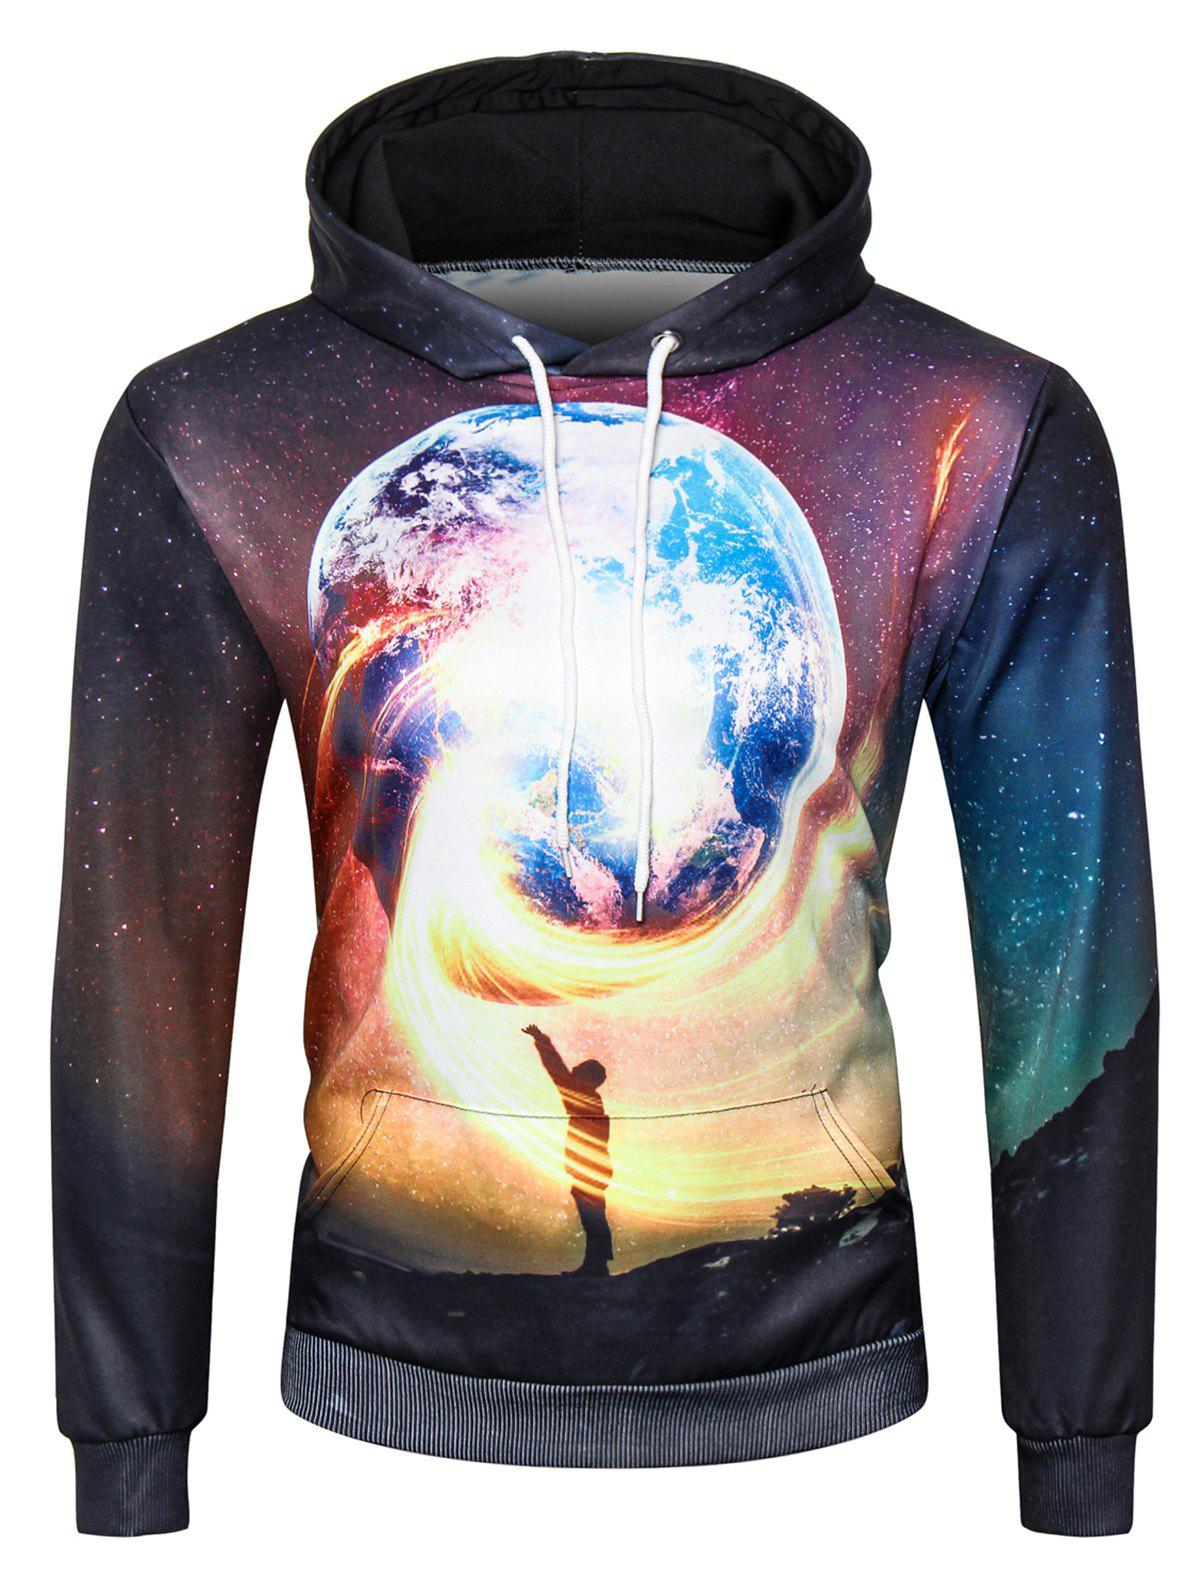 Trippy Galaxy Earth 3D Print Pullover Hoodie 3d galaxy trippy earth print pullover hoodie